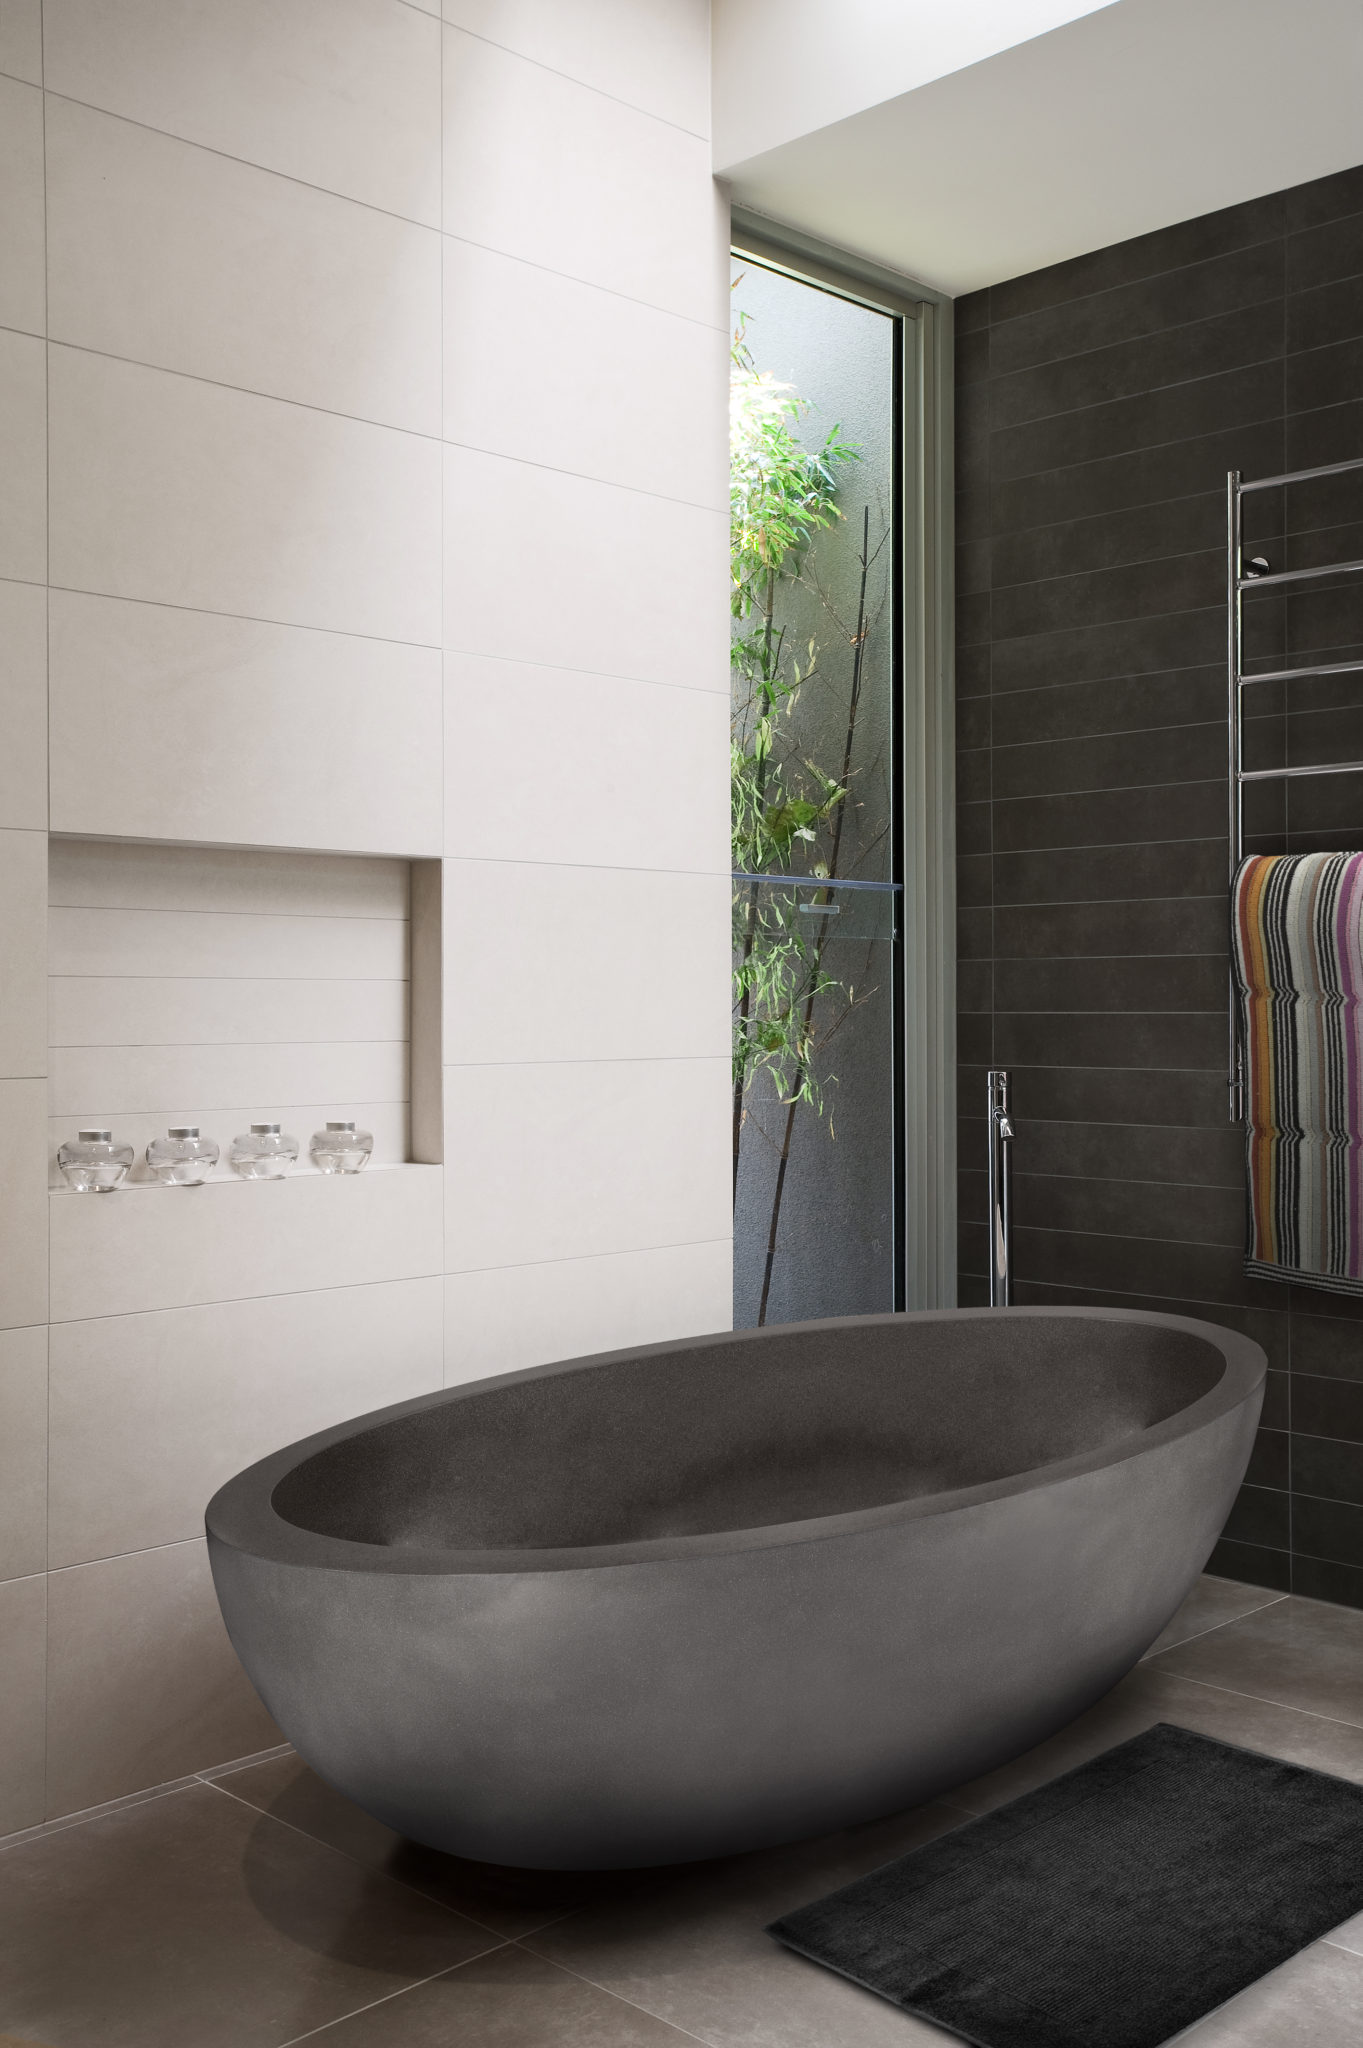 Bathroom trends 2014 driverlayer search engine for Bathroom design trends 2014